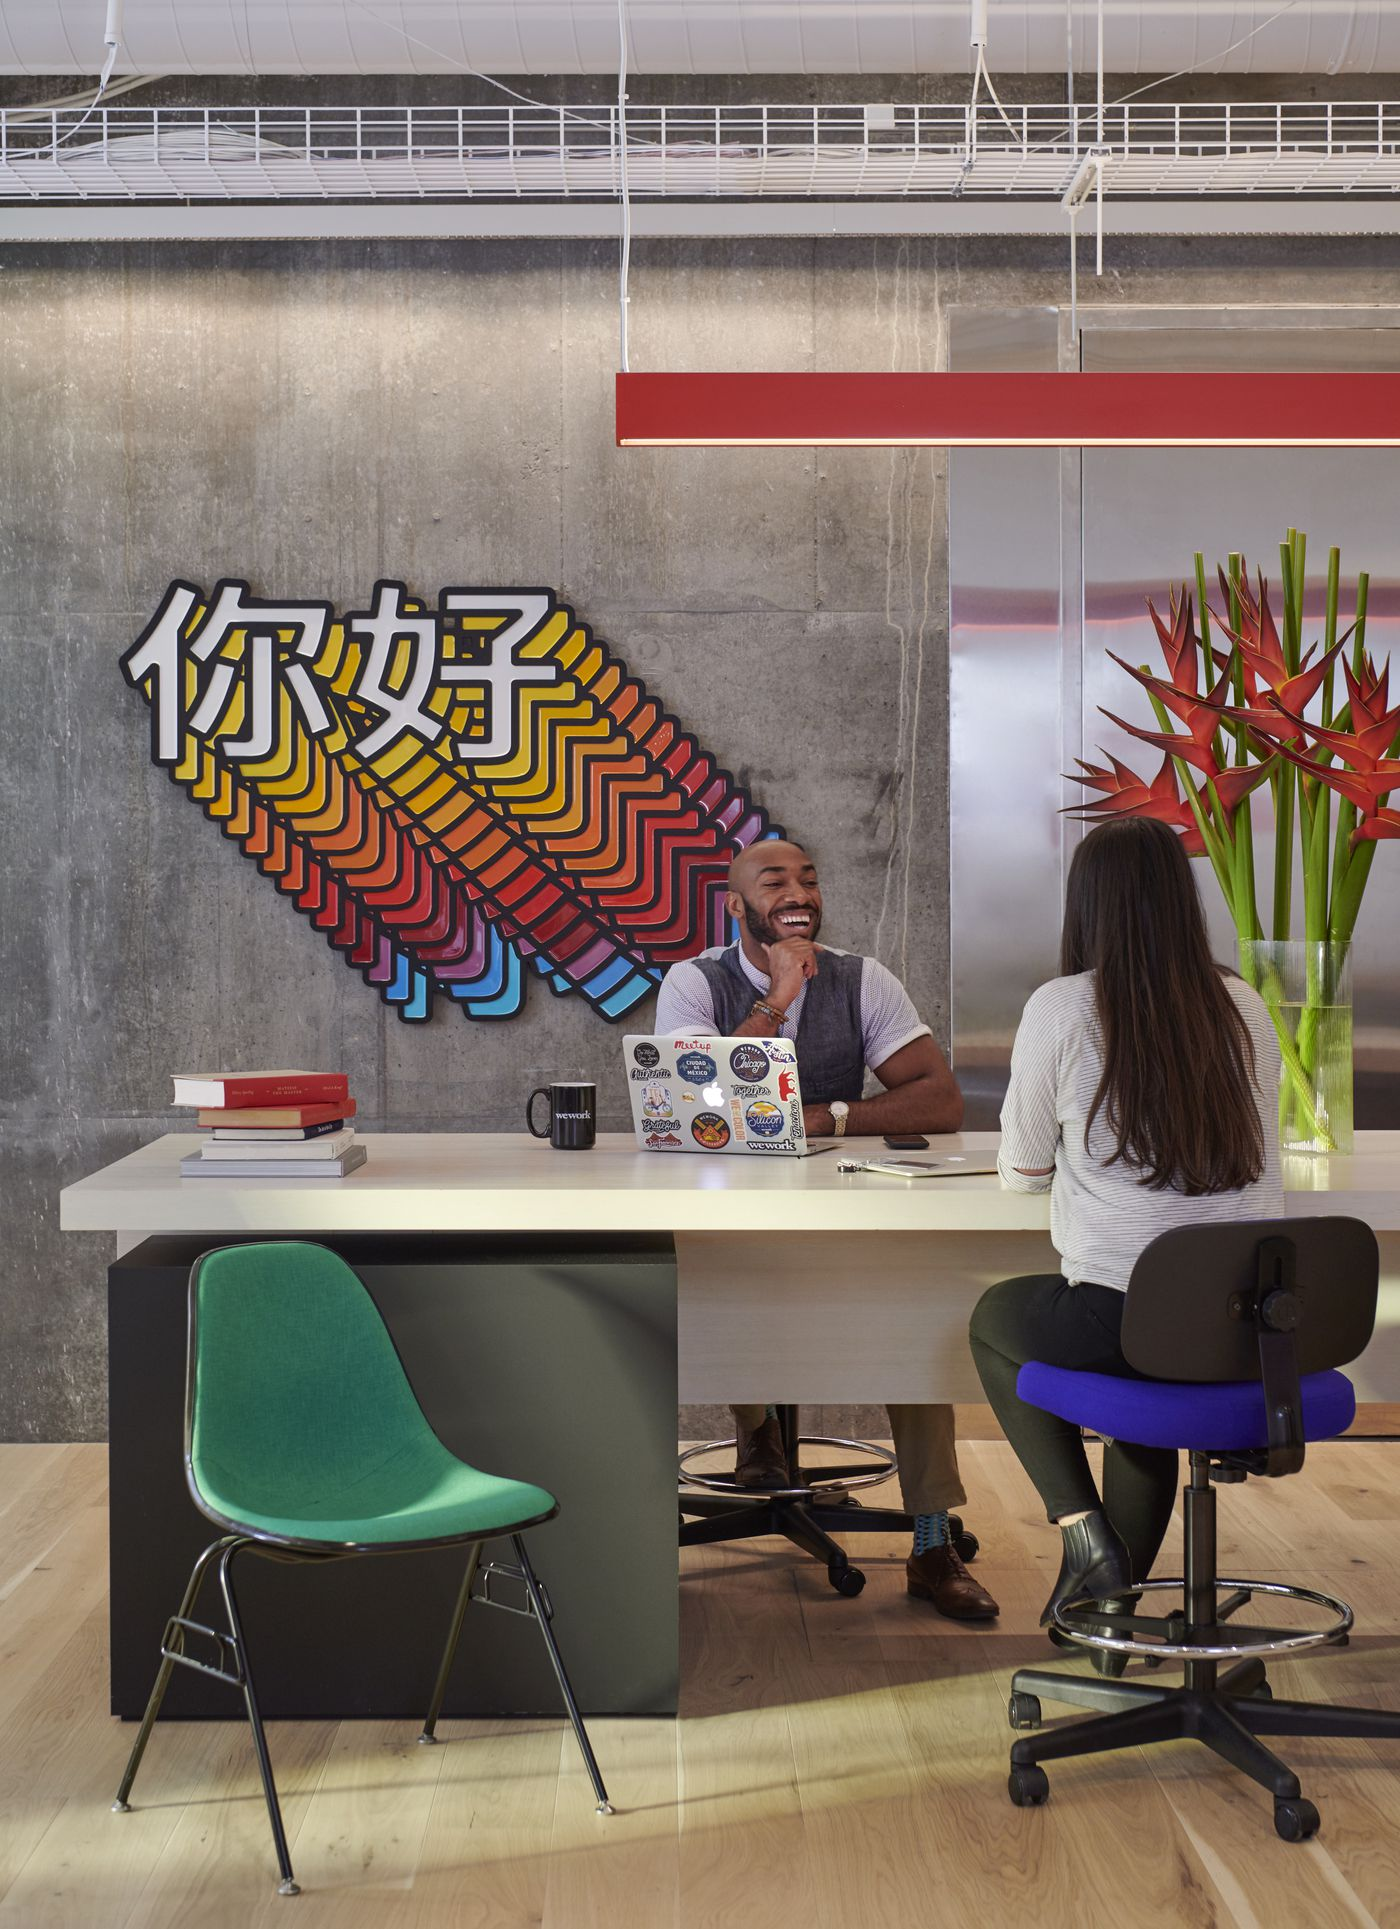 WeWork, home to freelancers and startups, is taking coworking